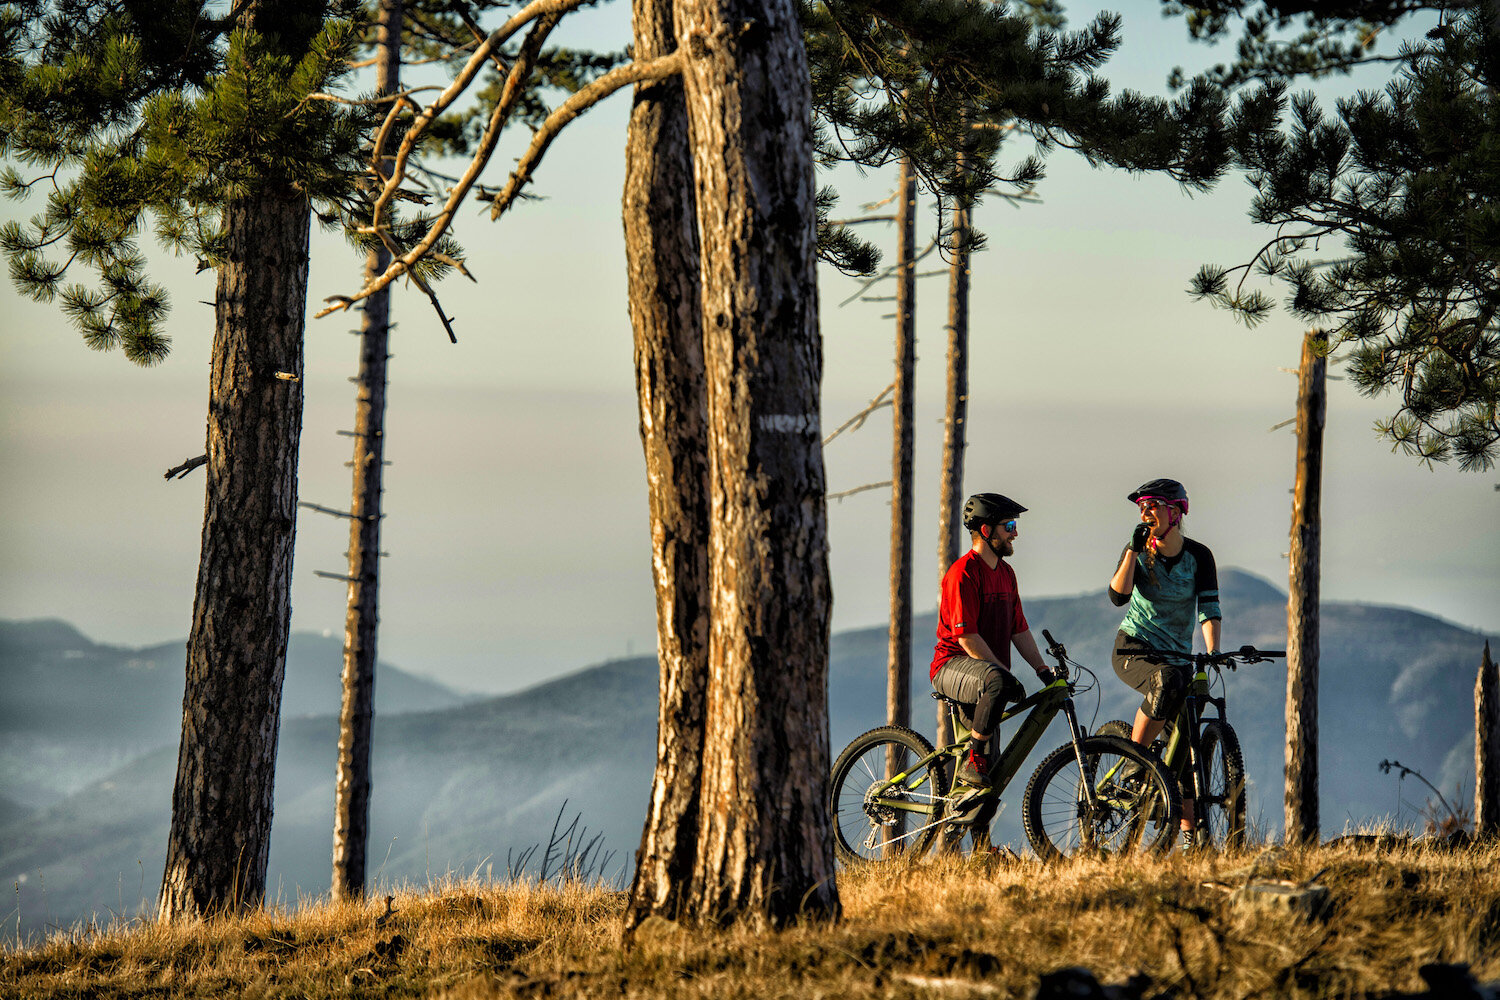 E-bikes level the playing field, allowing riders of varying skill, fitness, and experience levels to enjoy time together. (Trek Powerfly pictured.)